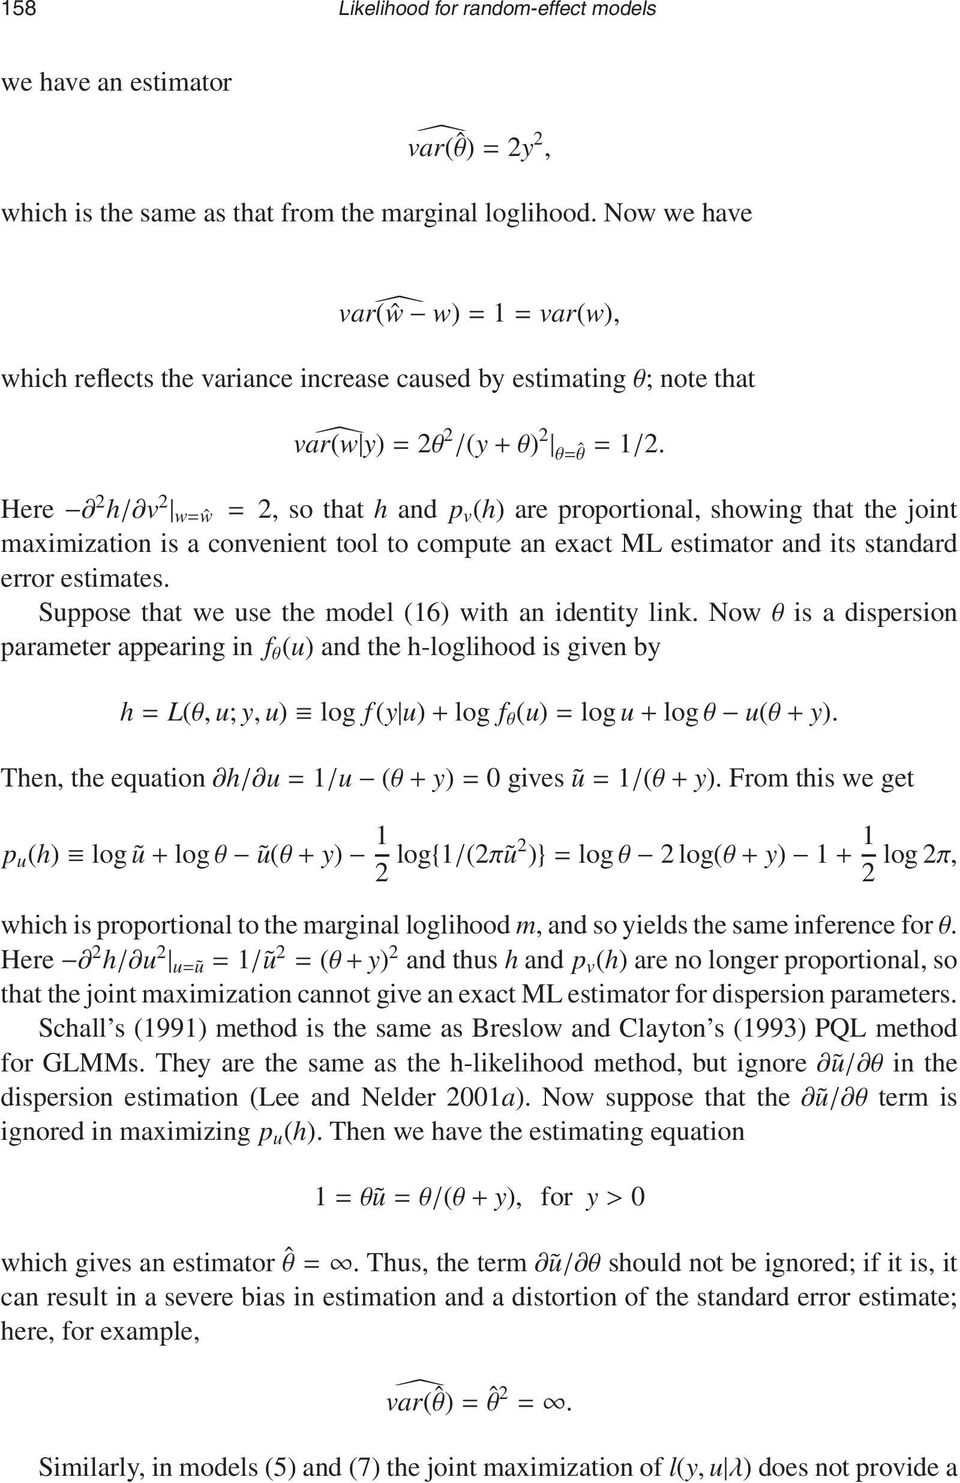 Here 2 h/ v 2 w=ŵ = 2, so that h and p v (h) are proportional, showing that the joint maximization is a convenient tool to compute an exact ML estimator and its standard error estimates.